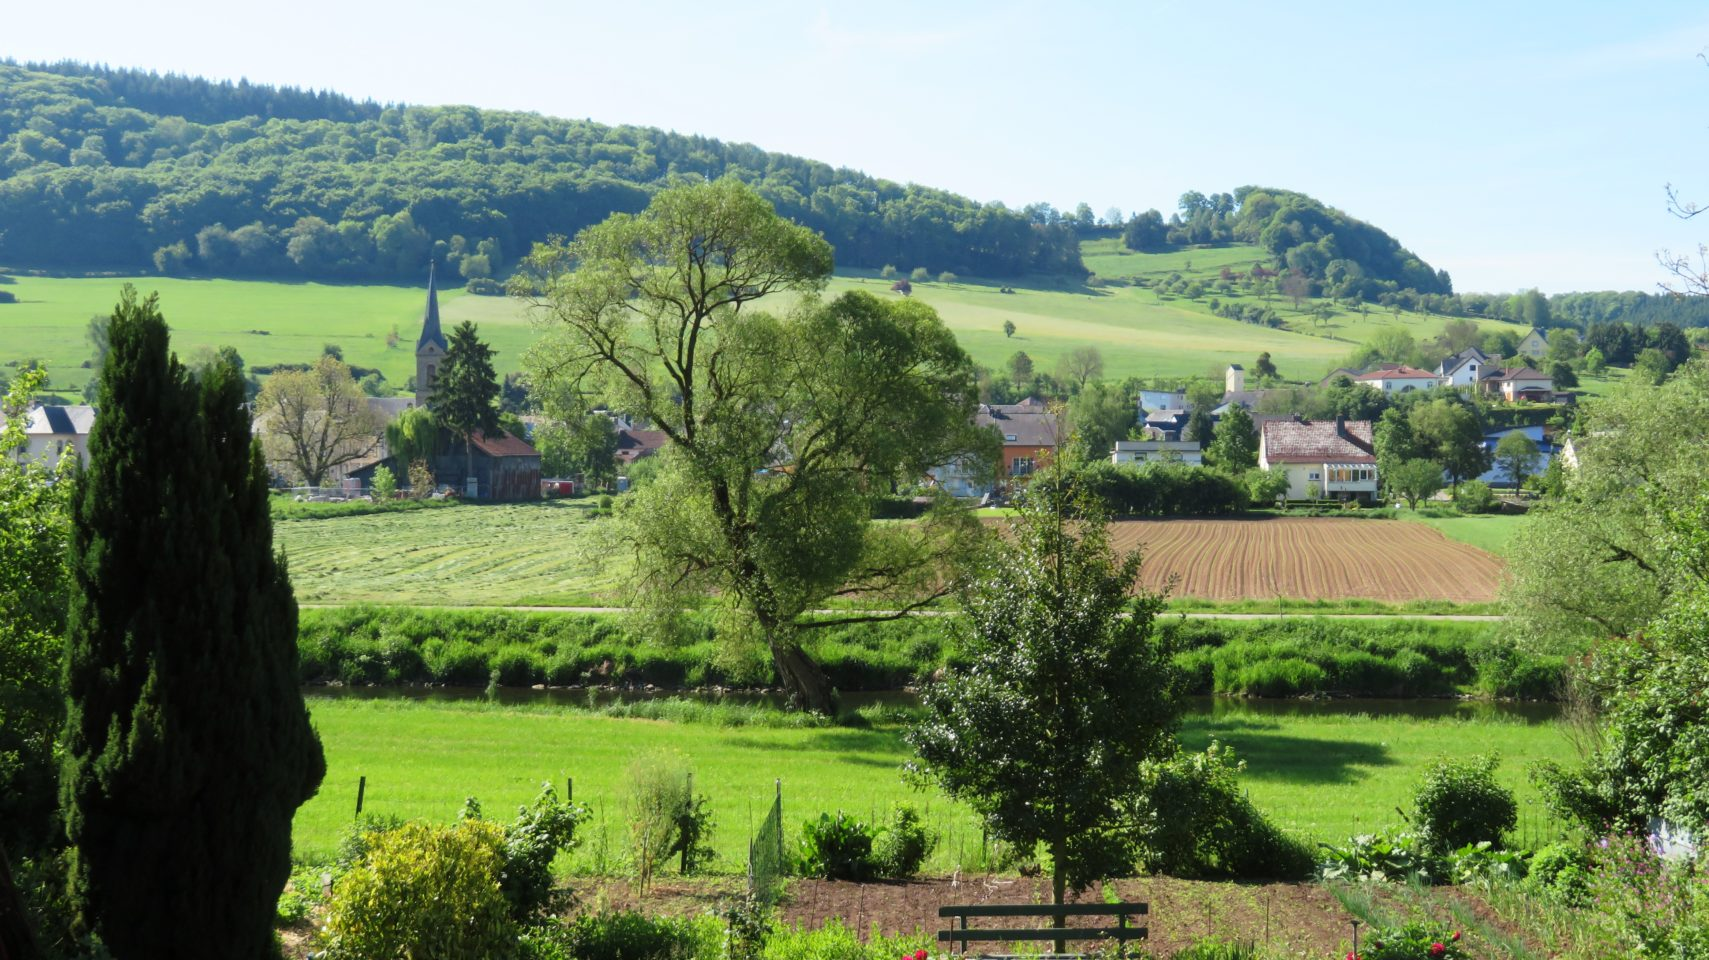 Absolutely gorgeous countryside of the country of <em><strong>Luxembourg</strong></em>